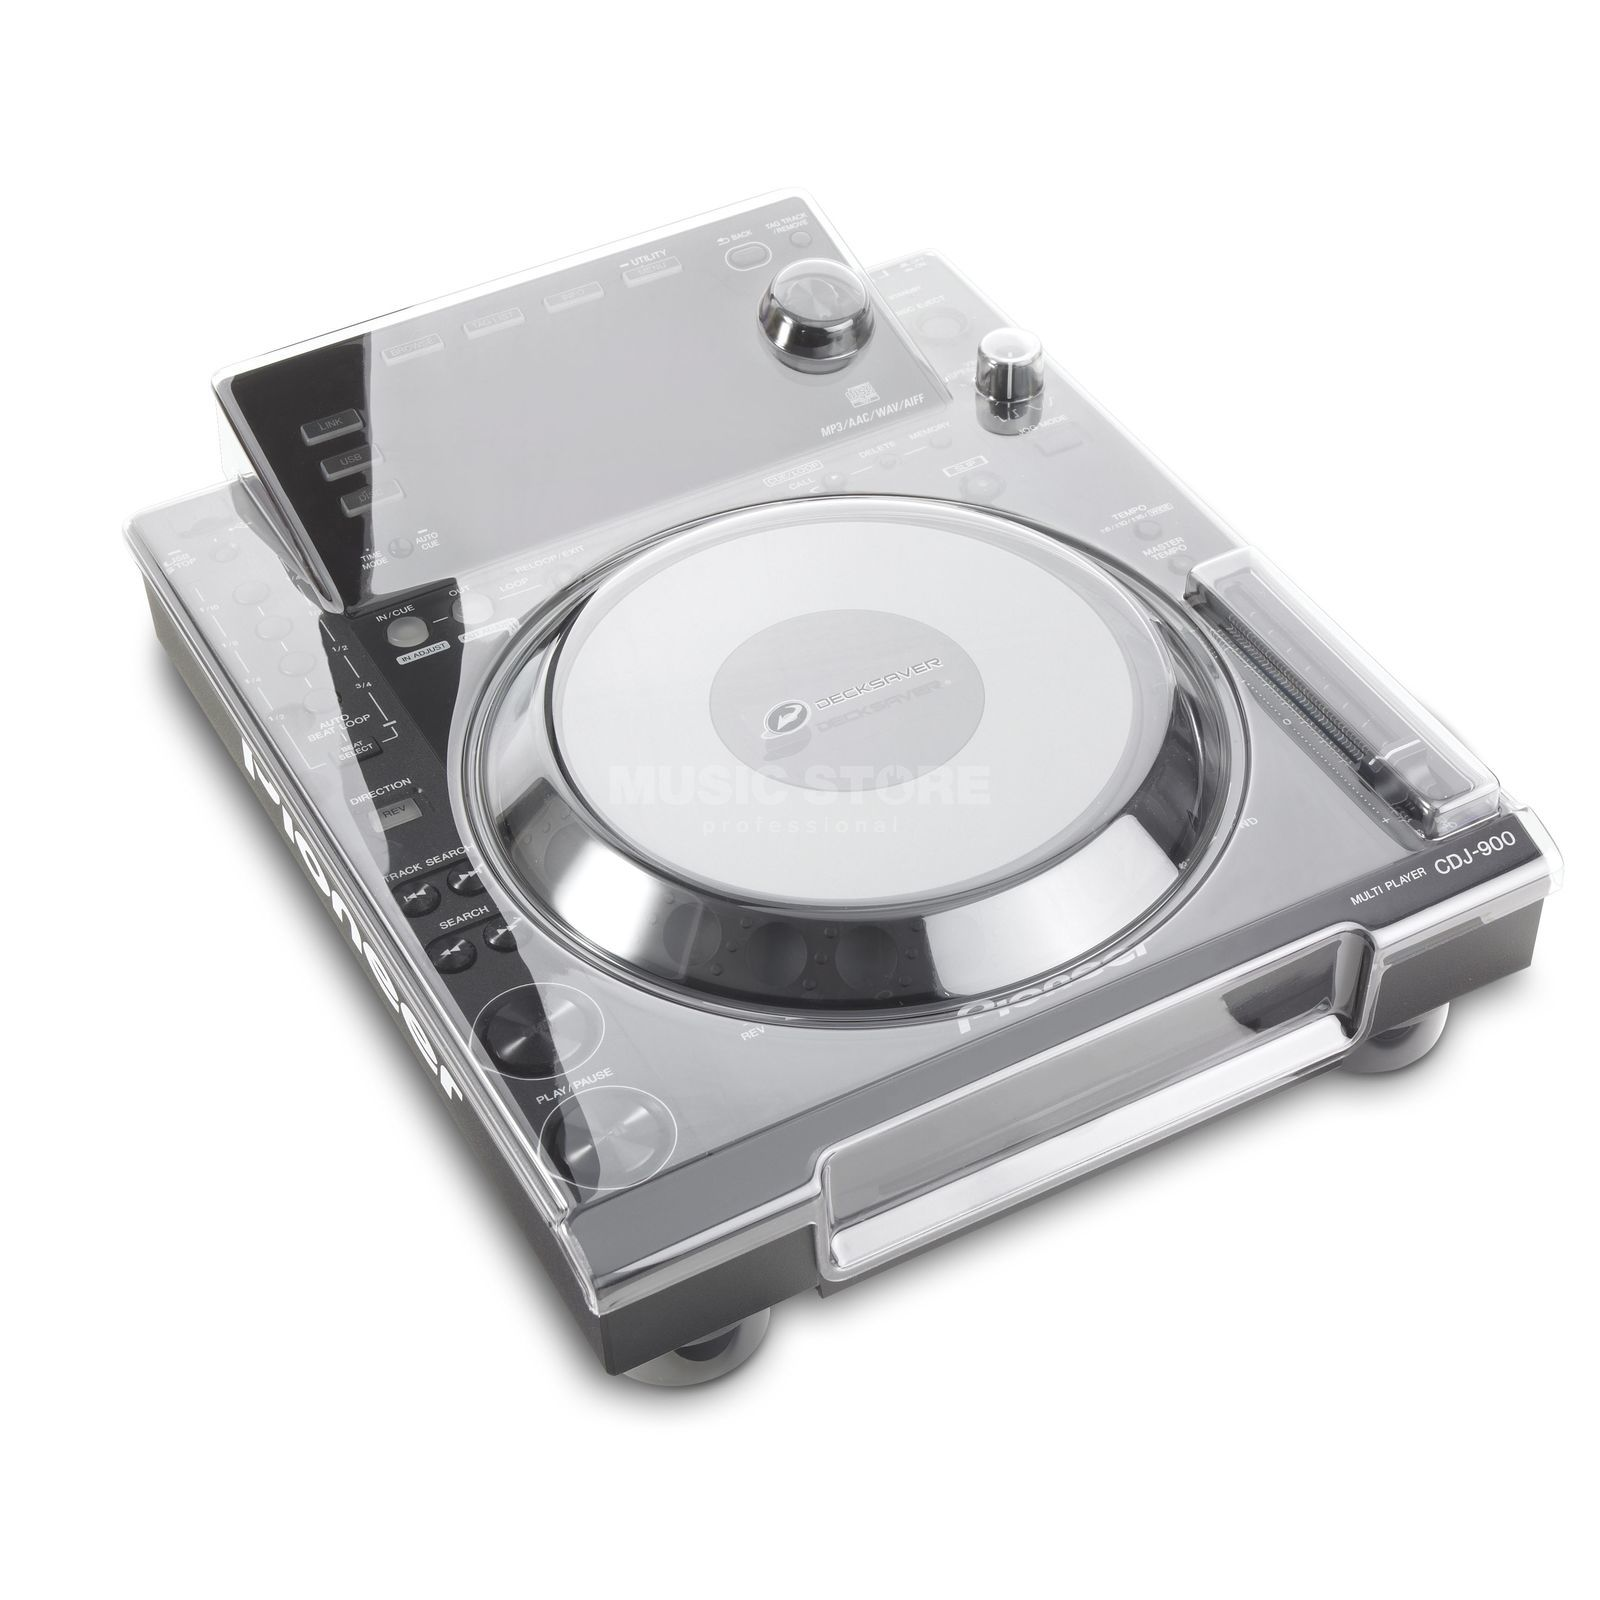 Decksaver Dust Cover CDJ 900  Изображение товара